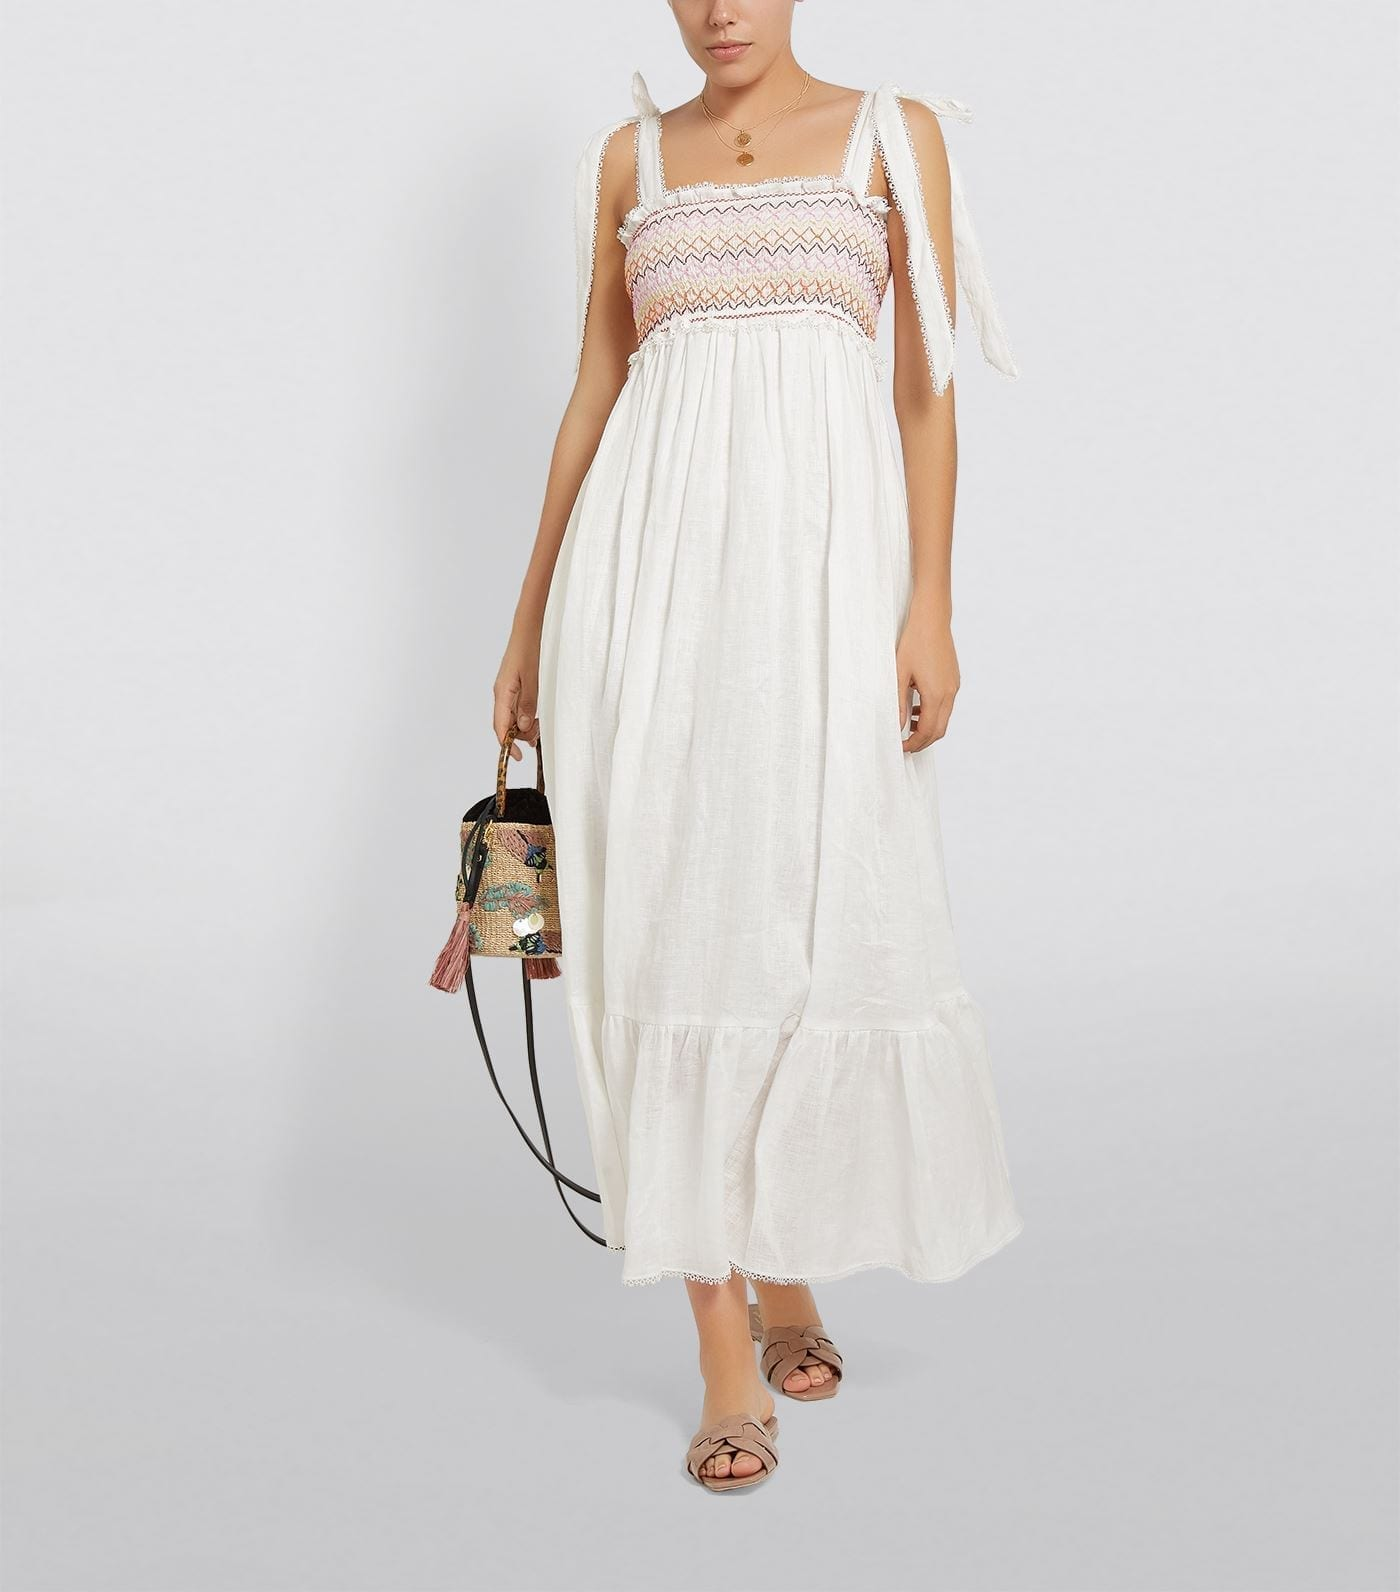 ZIMMERMANN Self-Tie Maxi Dress